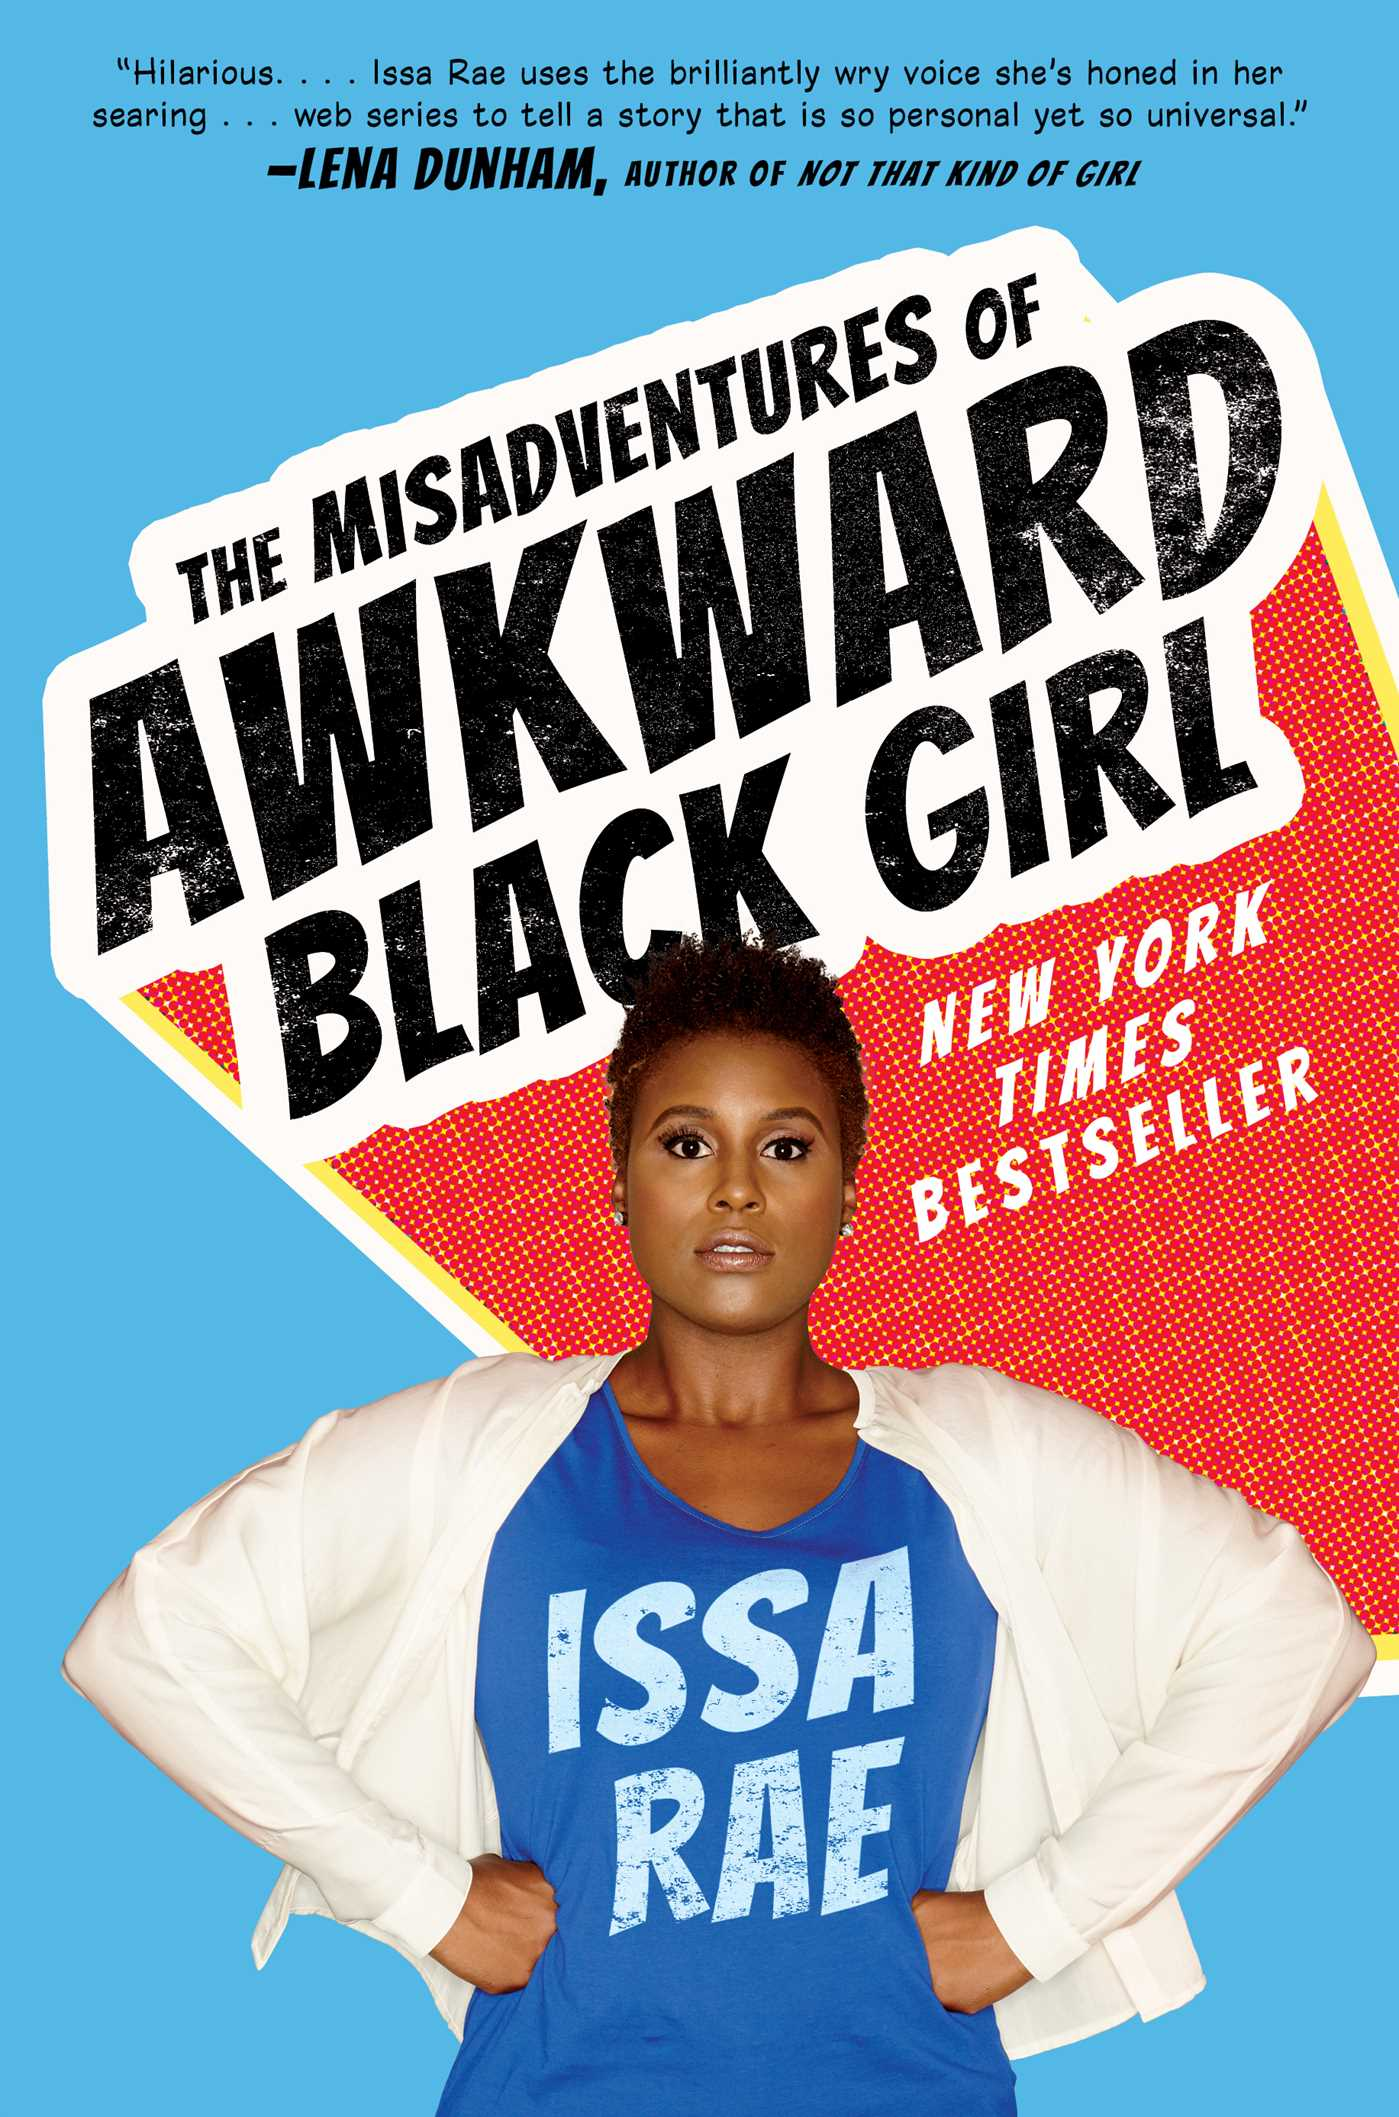 The-misadventures-of-awkward-black-girl-9781476749051_hr